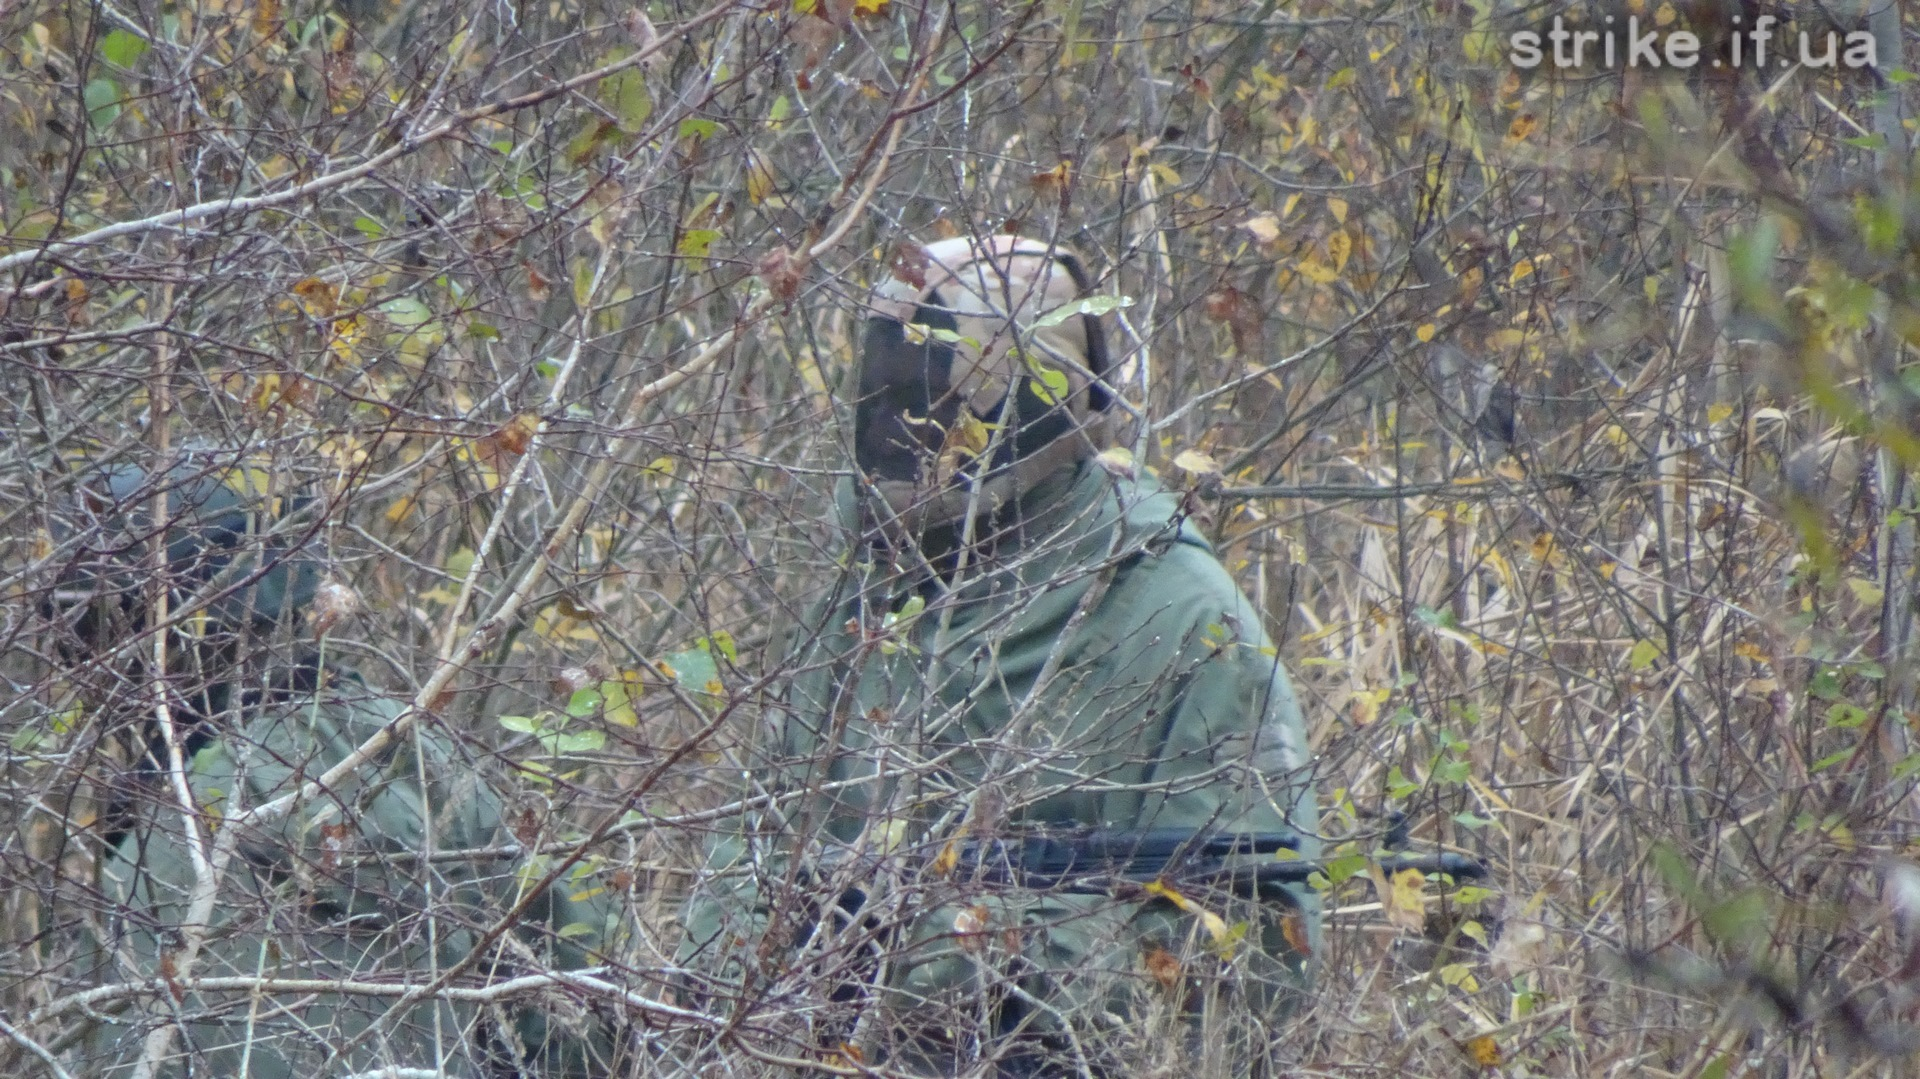 AIRSOFT GAME In Ivano-Frankivsk with an Owl airsoft club